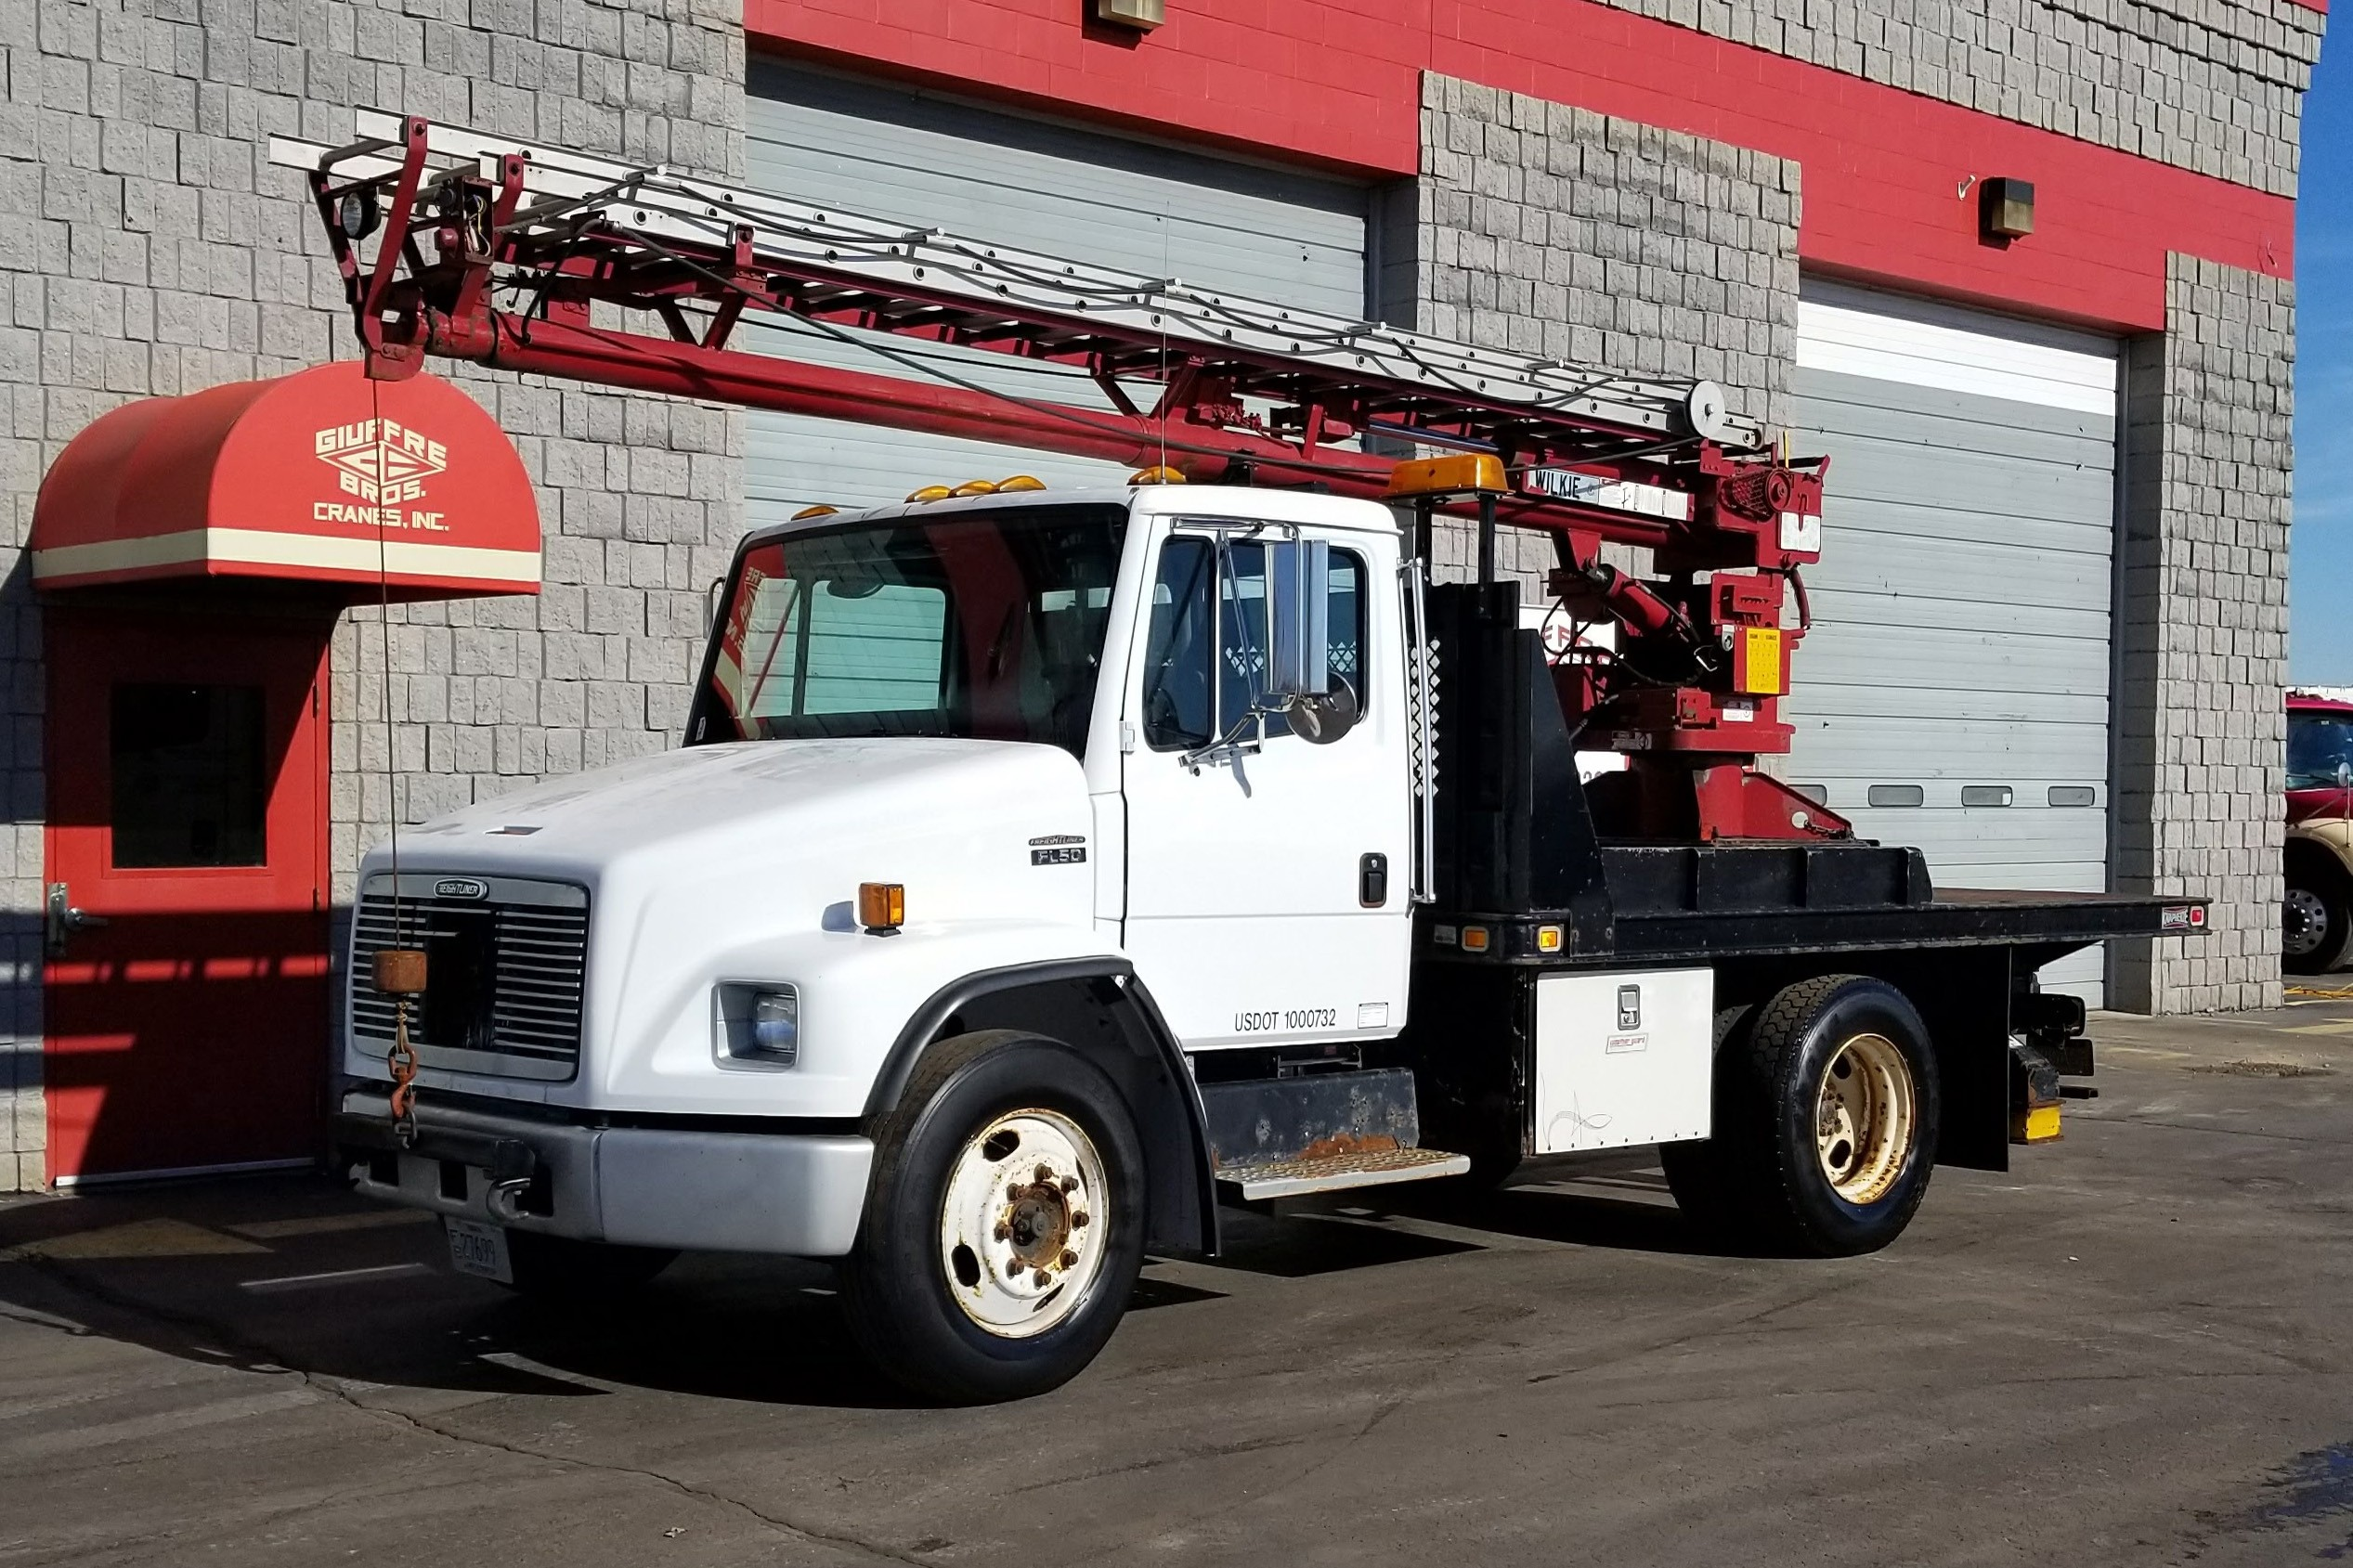 Pe R also P Front Steering  ponent Diagram With Part Numbers X in addition Ih as well Freightliner Coronado Repair Manual as well Mo. on freightliner parts catalog